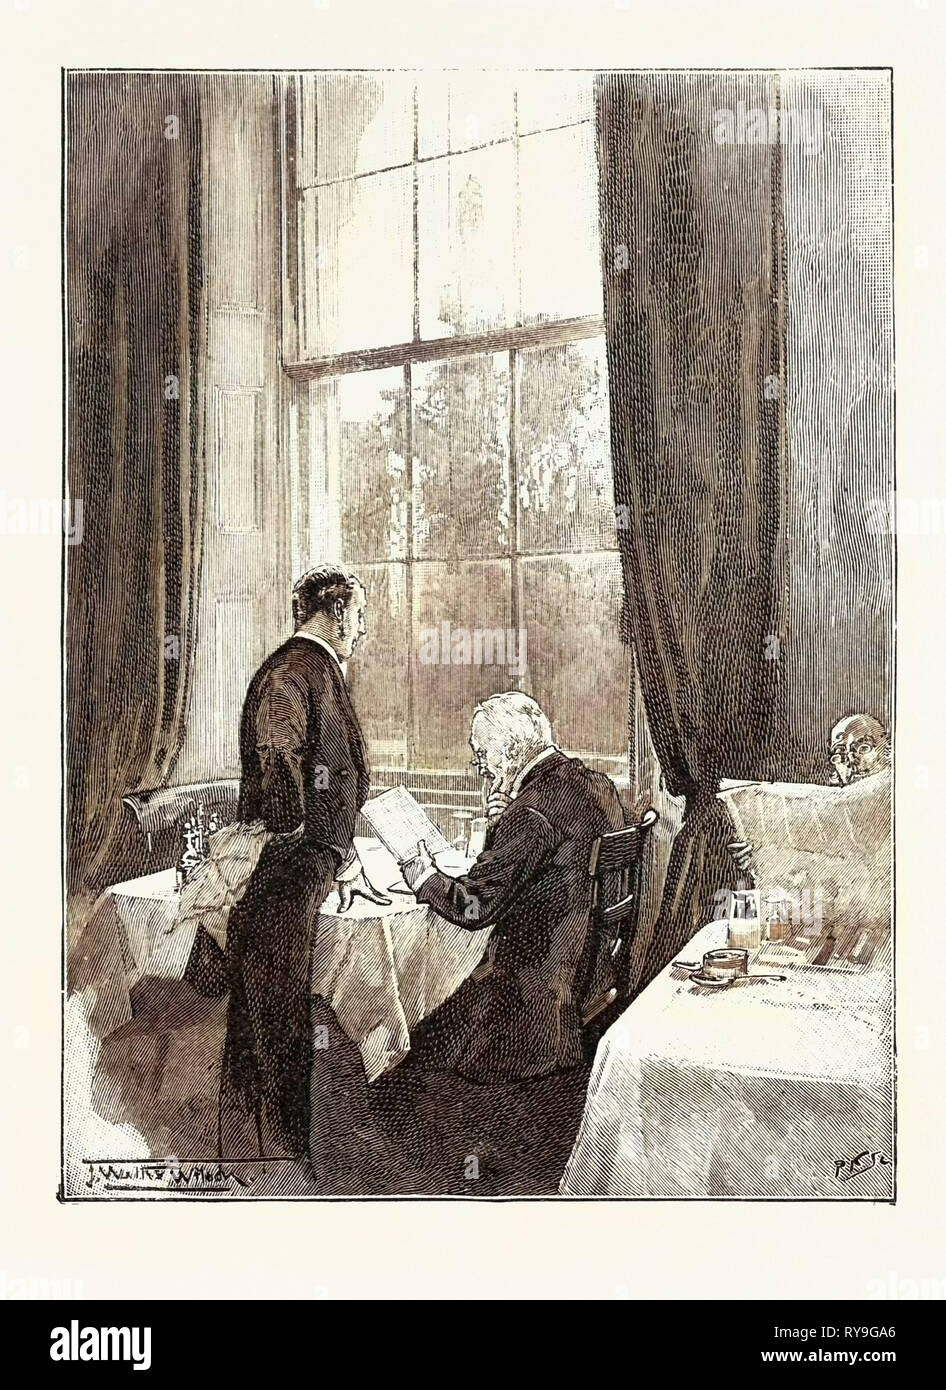 The Coffee Room, Athenaeum Club, Pall Mall, London, UK, 1893 Engraving - Stock Image